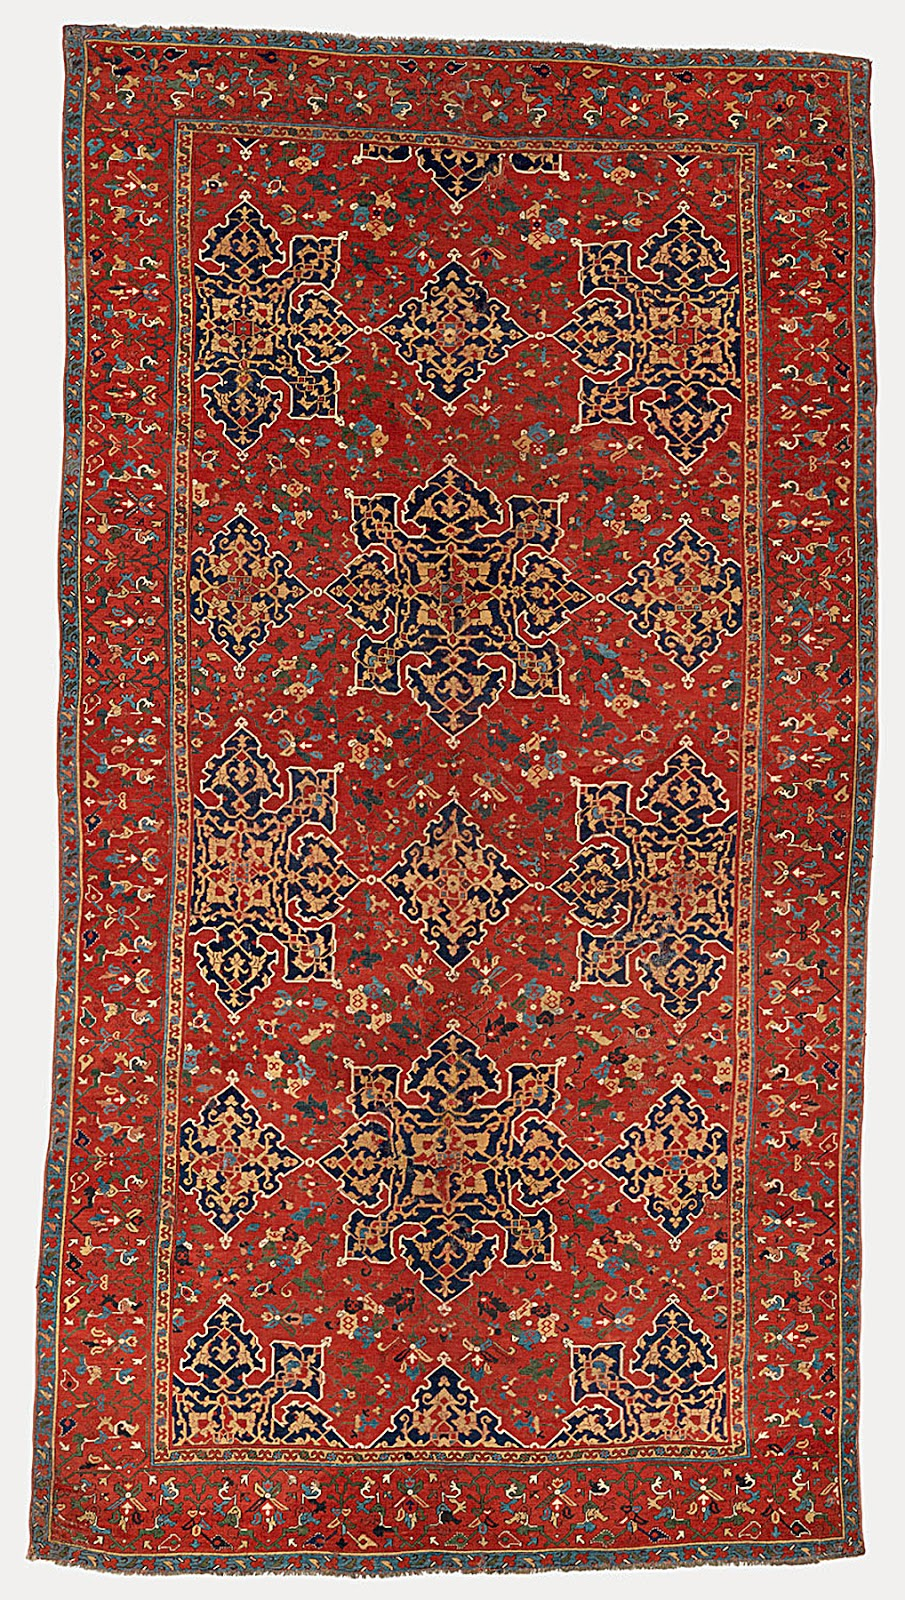 Architectural tiles glass and ornamentation in new york star ushak carpet late 15th century woven in the ushak region of western turkey star ushak carpets were made for regional consumption and for export dailygadgetfo Choice Image